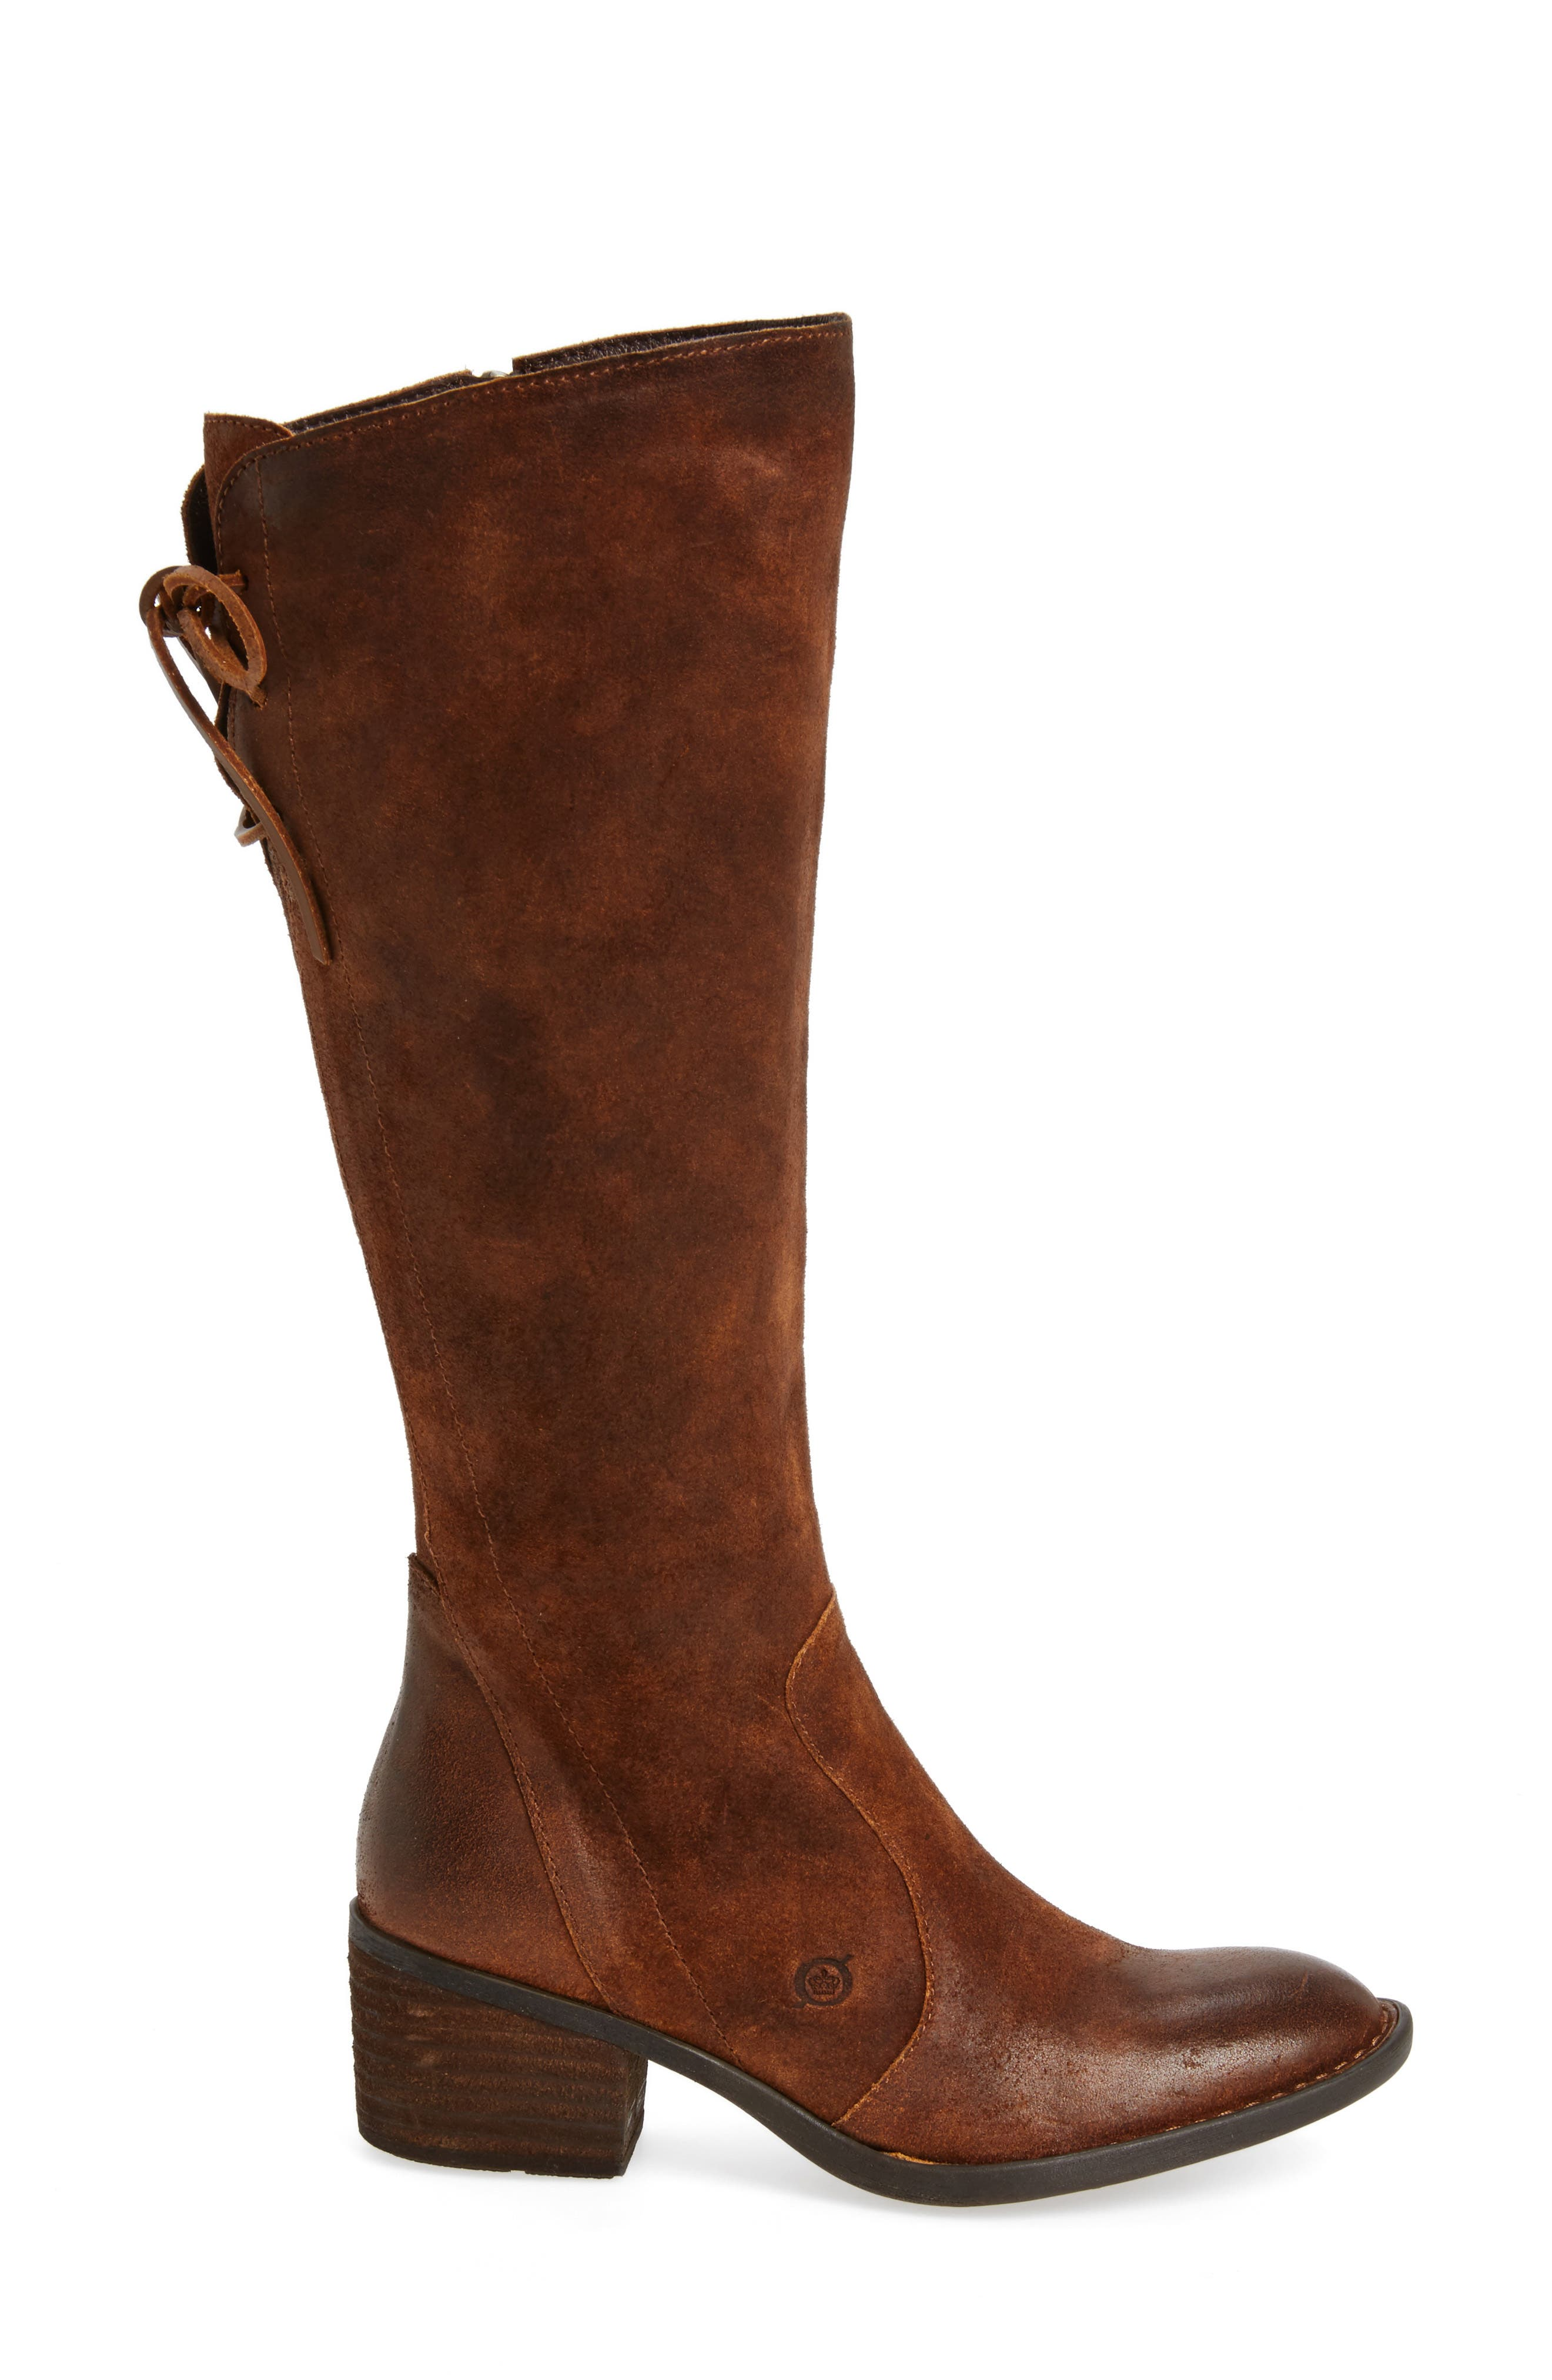 Felicia Knee High Boot,                             Alternate thumbnail 3, color,                             Rust Distressed Leather